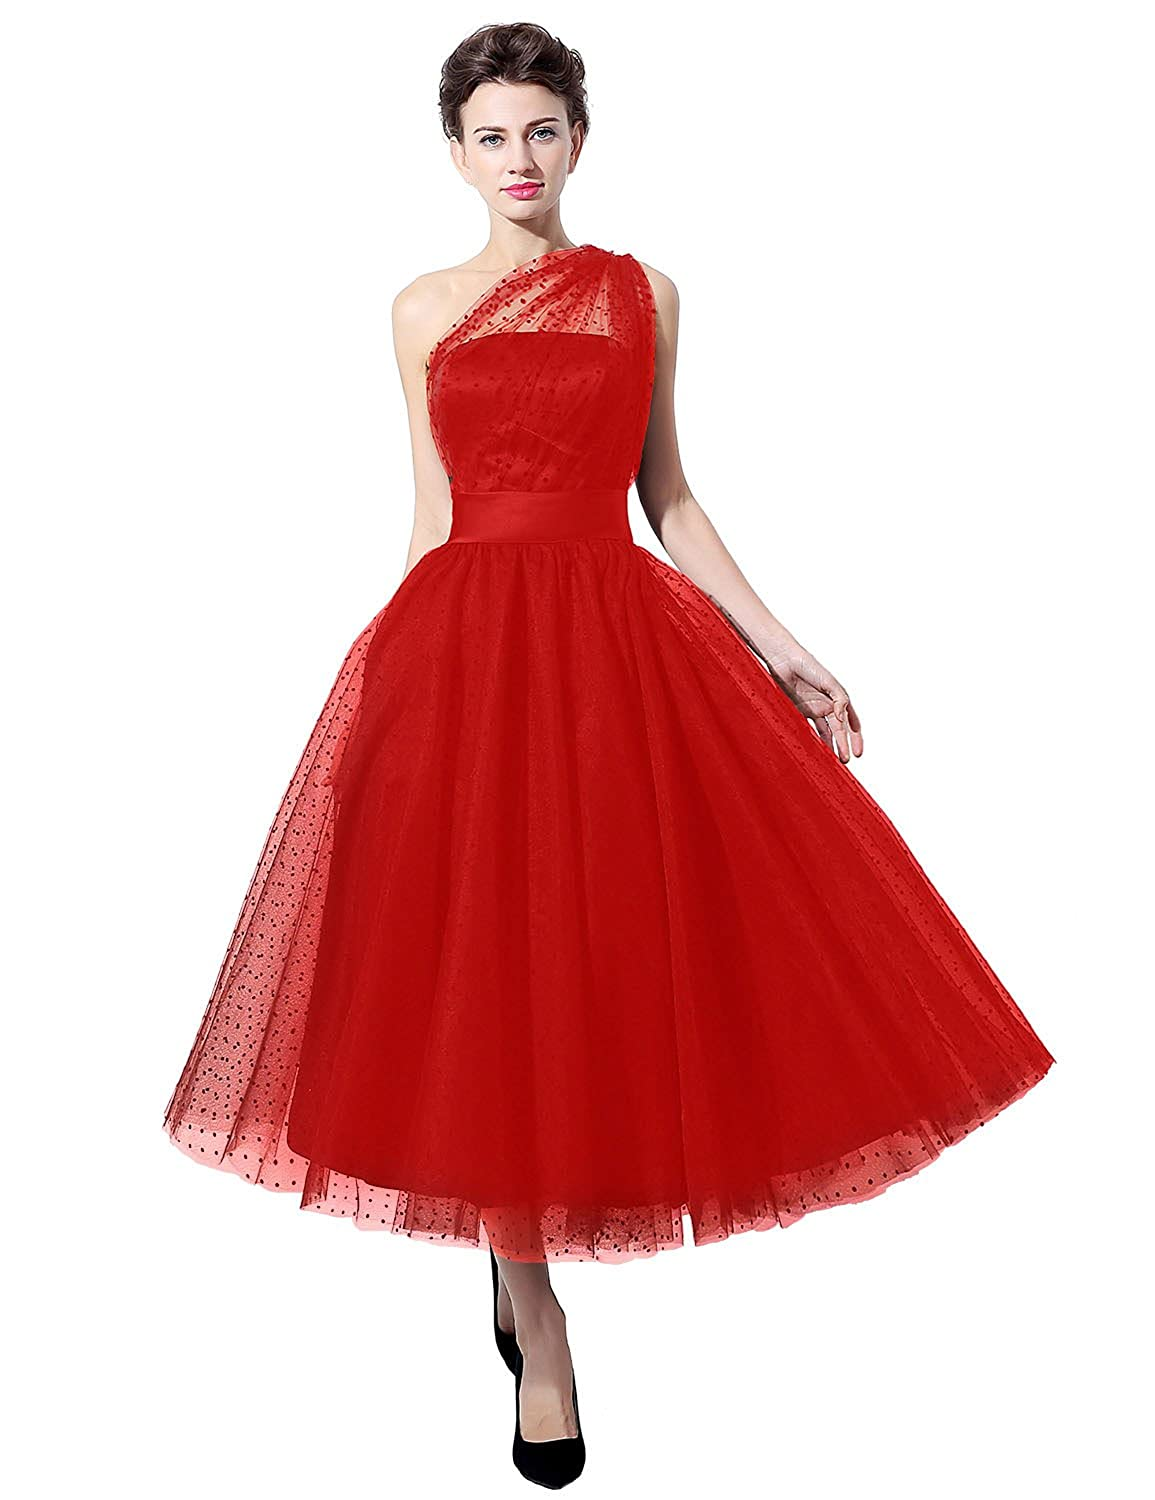 Sarahbridal Vintage Prom Dress Tea Length One Shoulder Bridesmaid SD 337 red uk28W